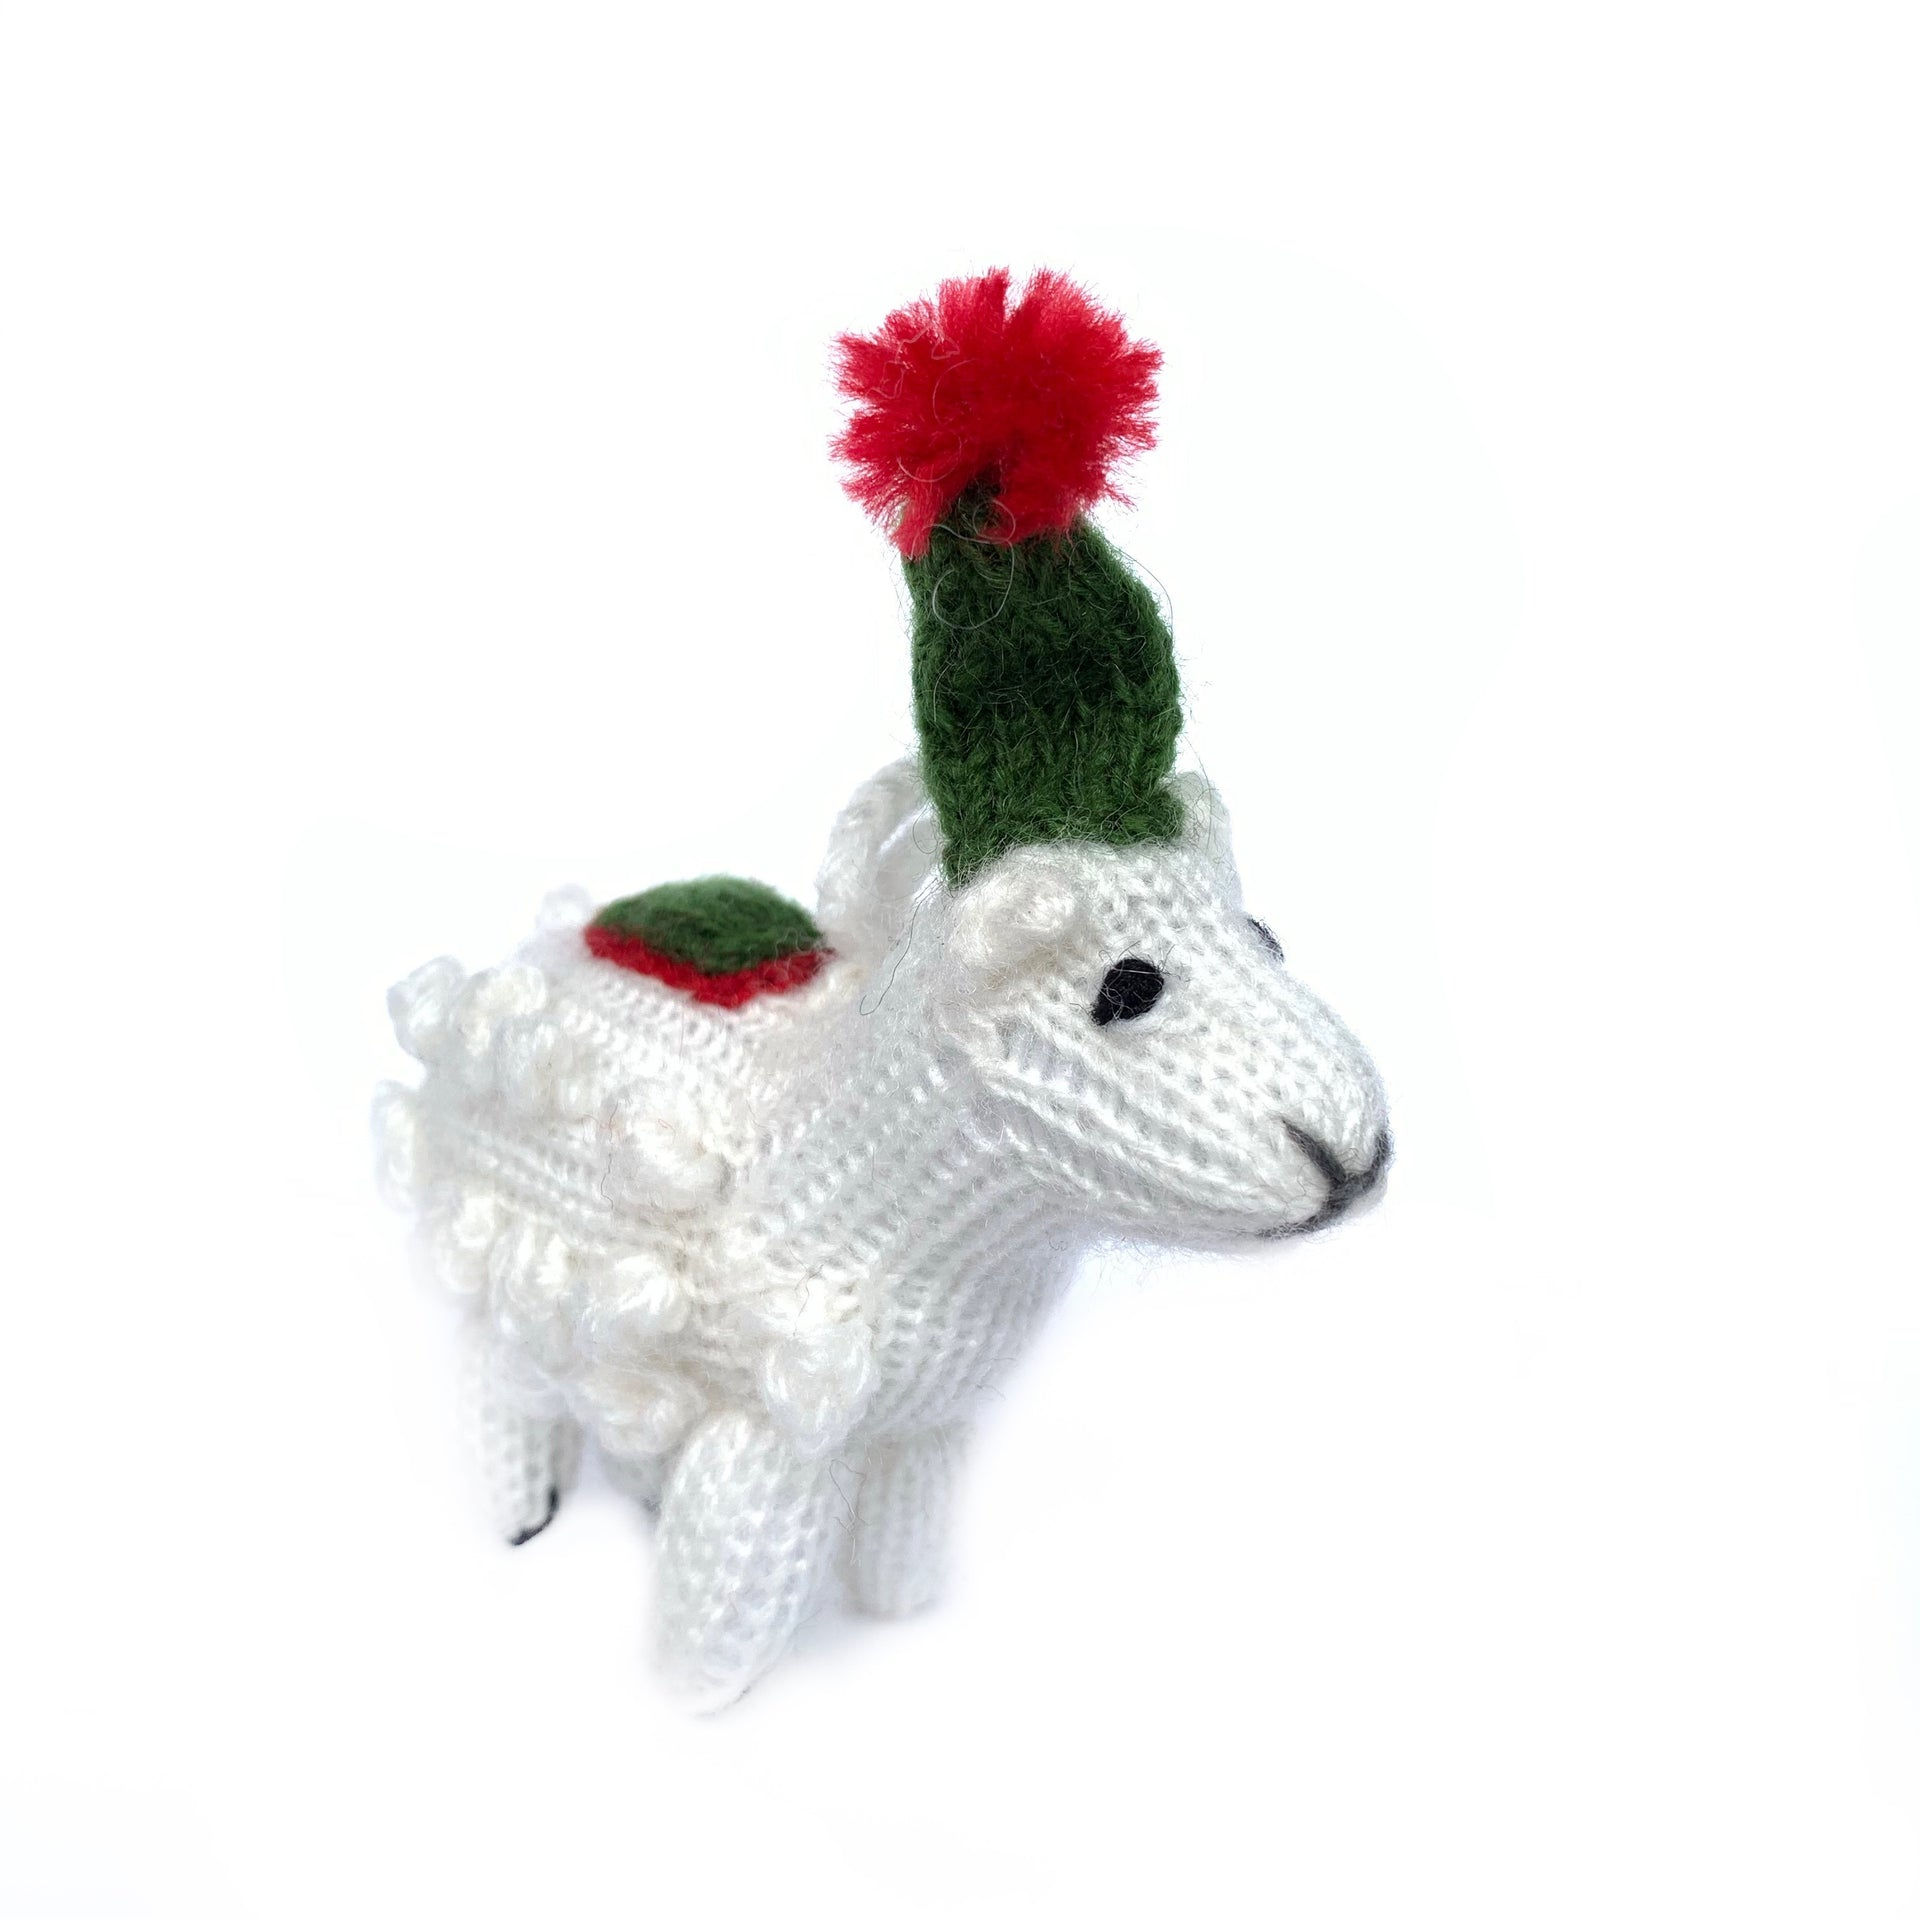 Sheep Christmas Ornament Handmade Knit Wool